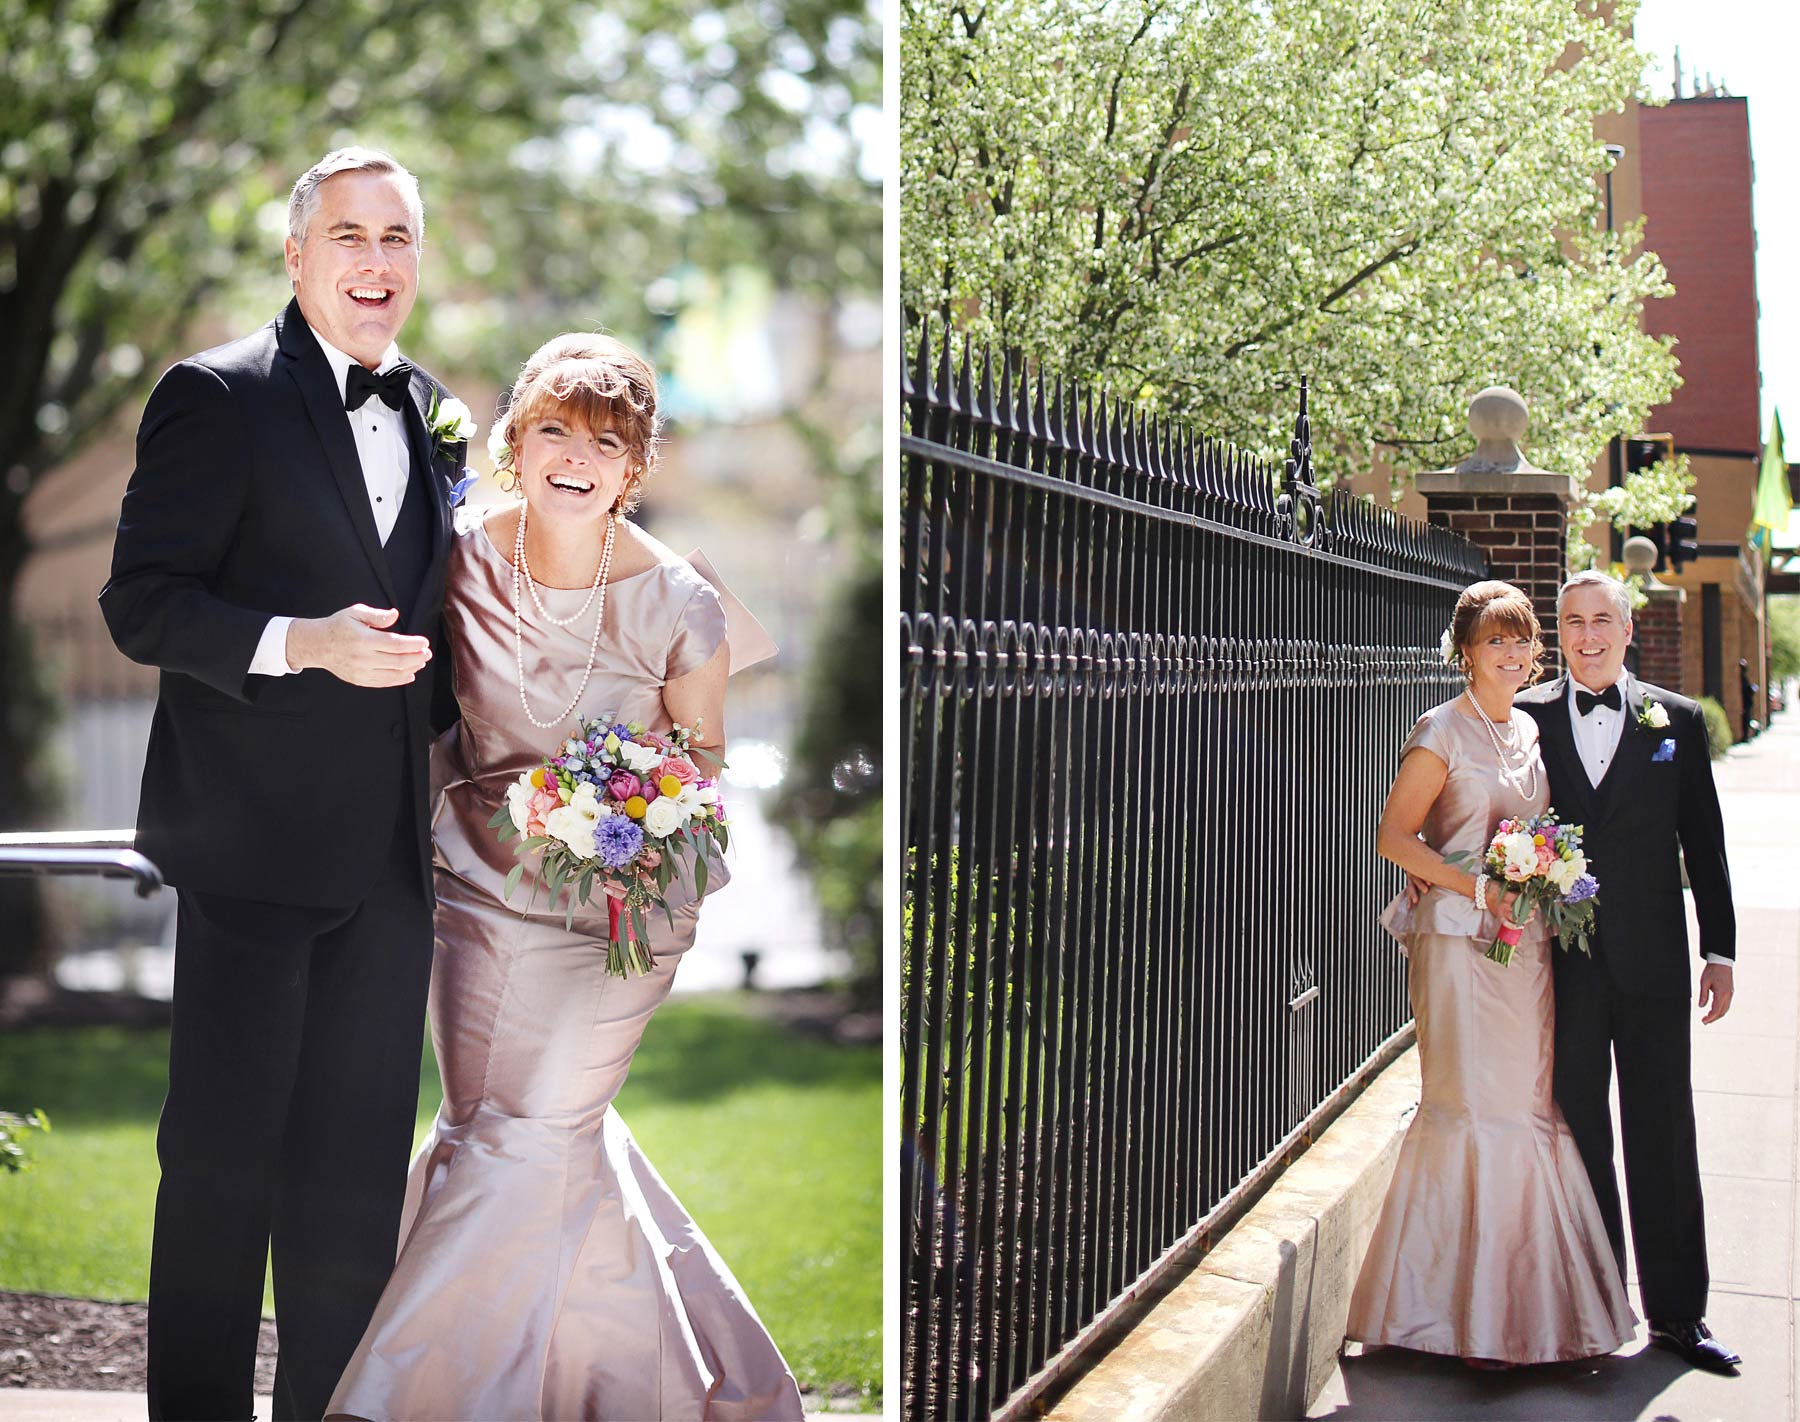 05-Minneapolis-Minnesota-Wedding-Photography-by-Vick-Photography-Downtown-The-Minneapolis-Club-Mansion-First-Look-Spring-City-Garden-Tonia-and-Paul.jpg